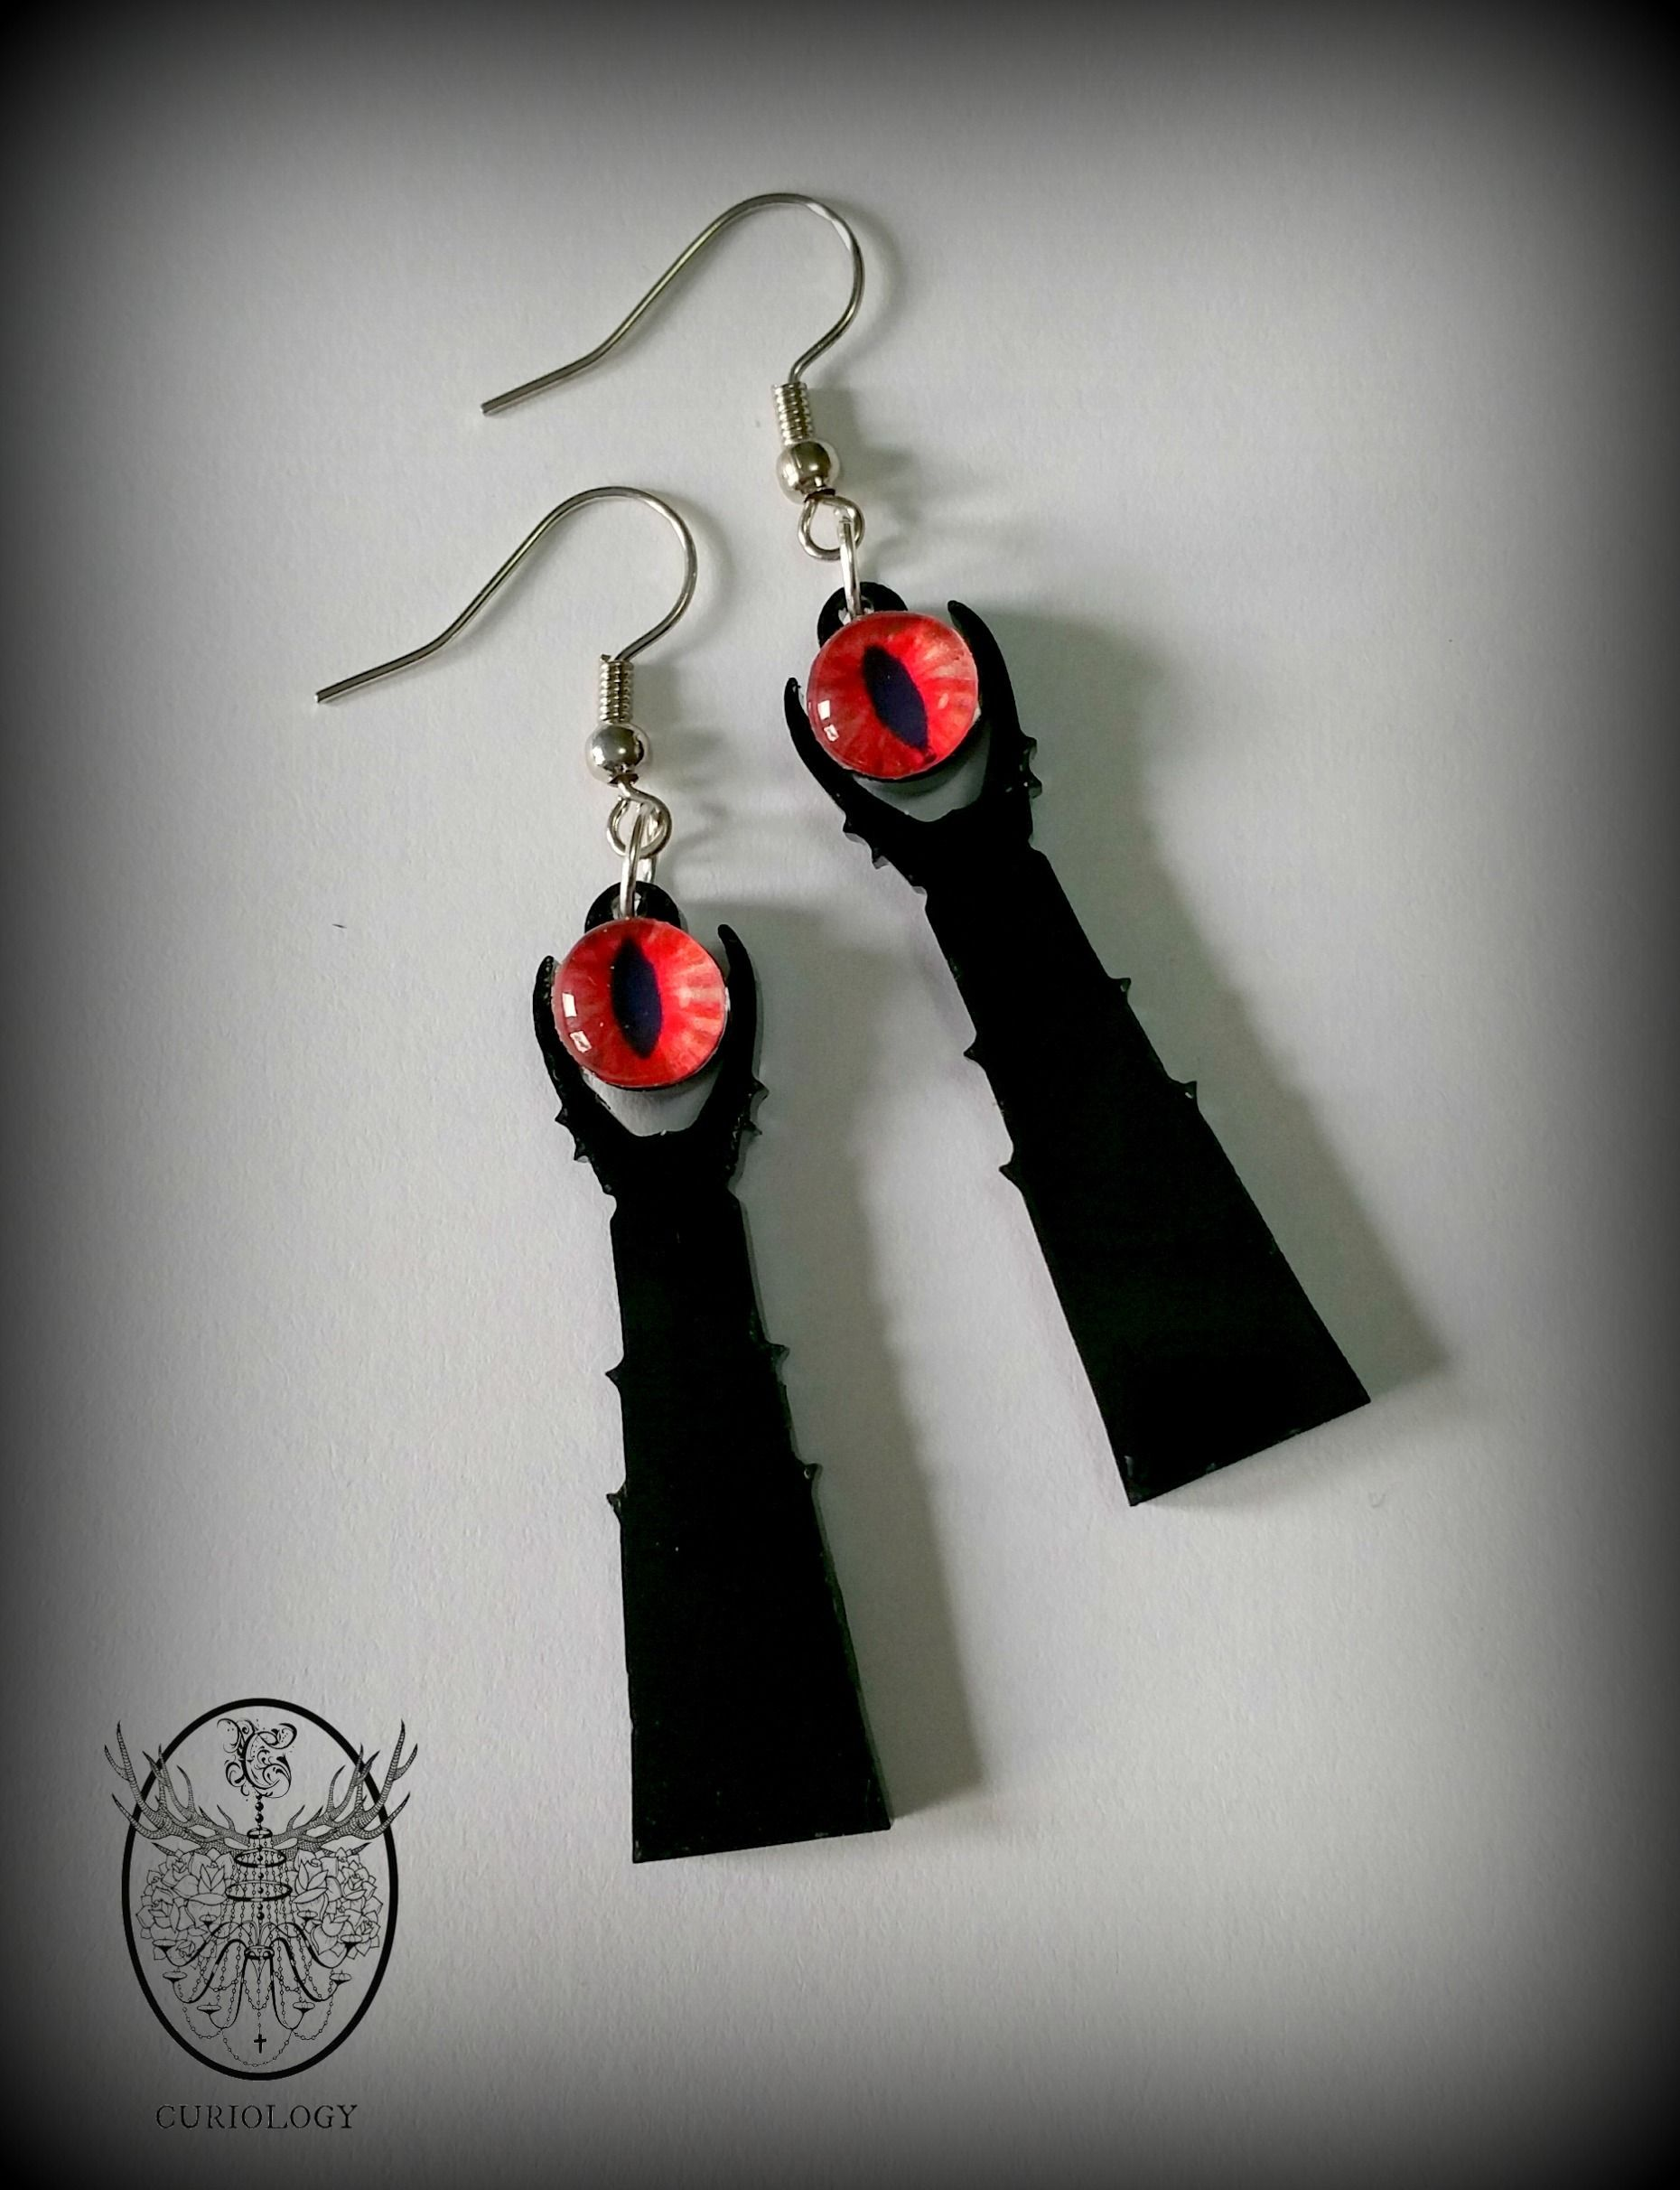 """""""Then at last his gaze was held: wall upon wall, battlement upon battlement, black tower of adamant, he saw it: Barad-dûr, Fortress of Sauron. All hope left him.""""5cm tall laser cut gloss black acrylic earrings, with tiny 8mm glass domes with the Eye of Sauron.Worn on nickel free silver or black ear hooks.As all items are made to order, please allow 3-5 working days for your item to dispatch. An email will be sent to you when your order is on the way. We shi..."""